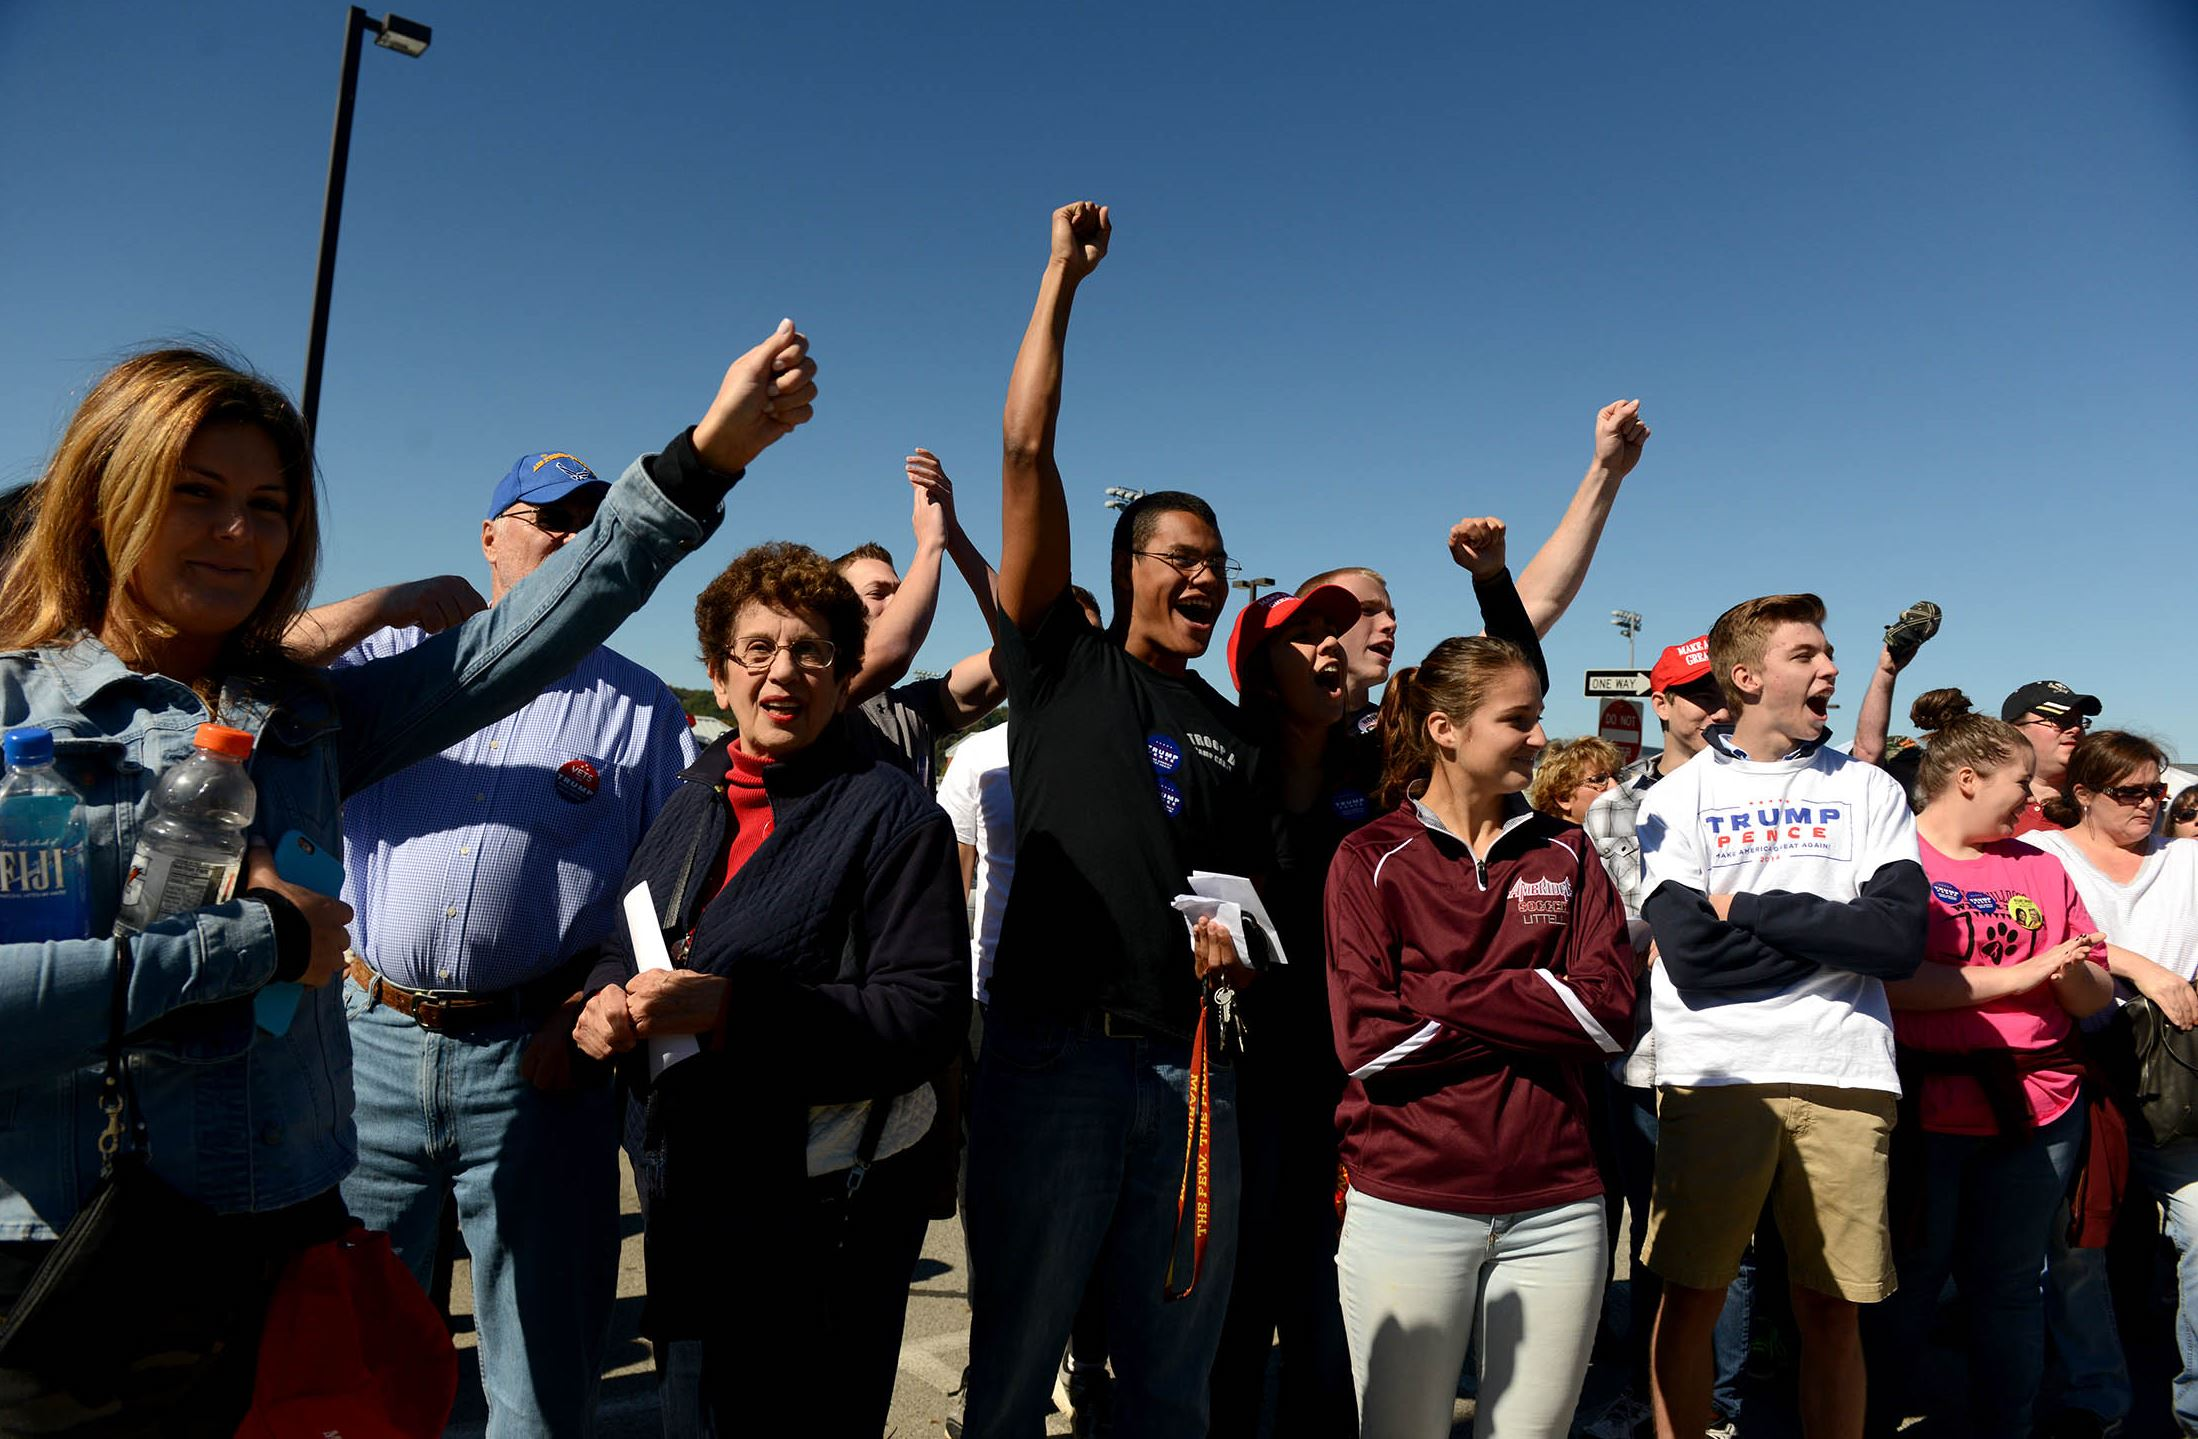 Trump supporters yell at pro-Clinton crowd at Ambridge High School Donald Trump supporters yell at a group of pro-Hillary Clinton protesters.